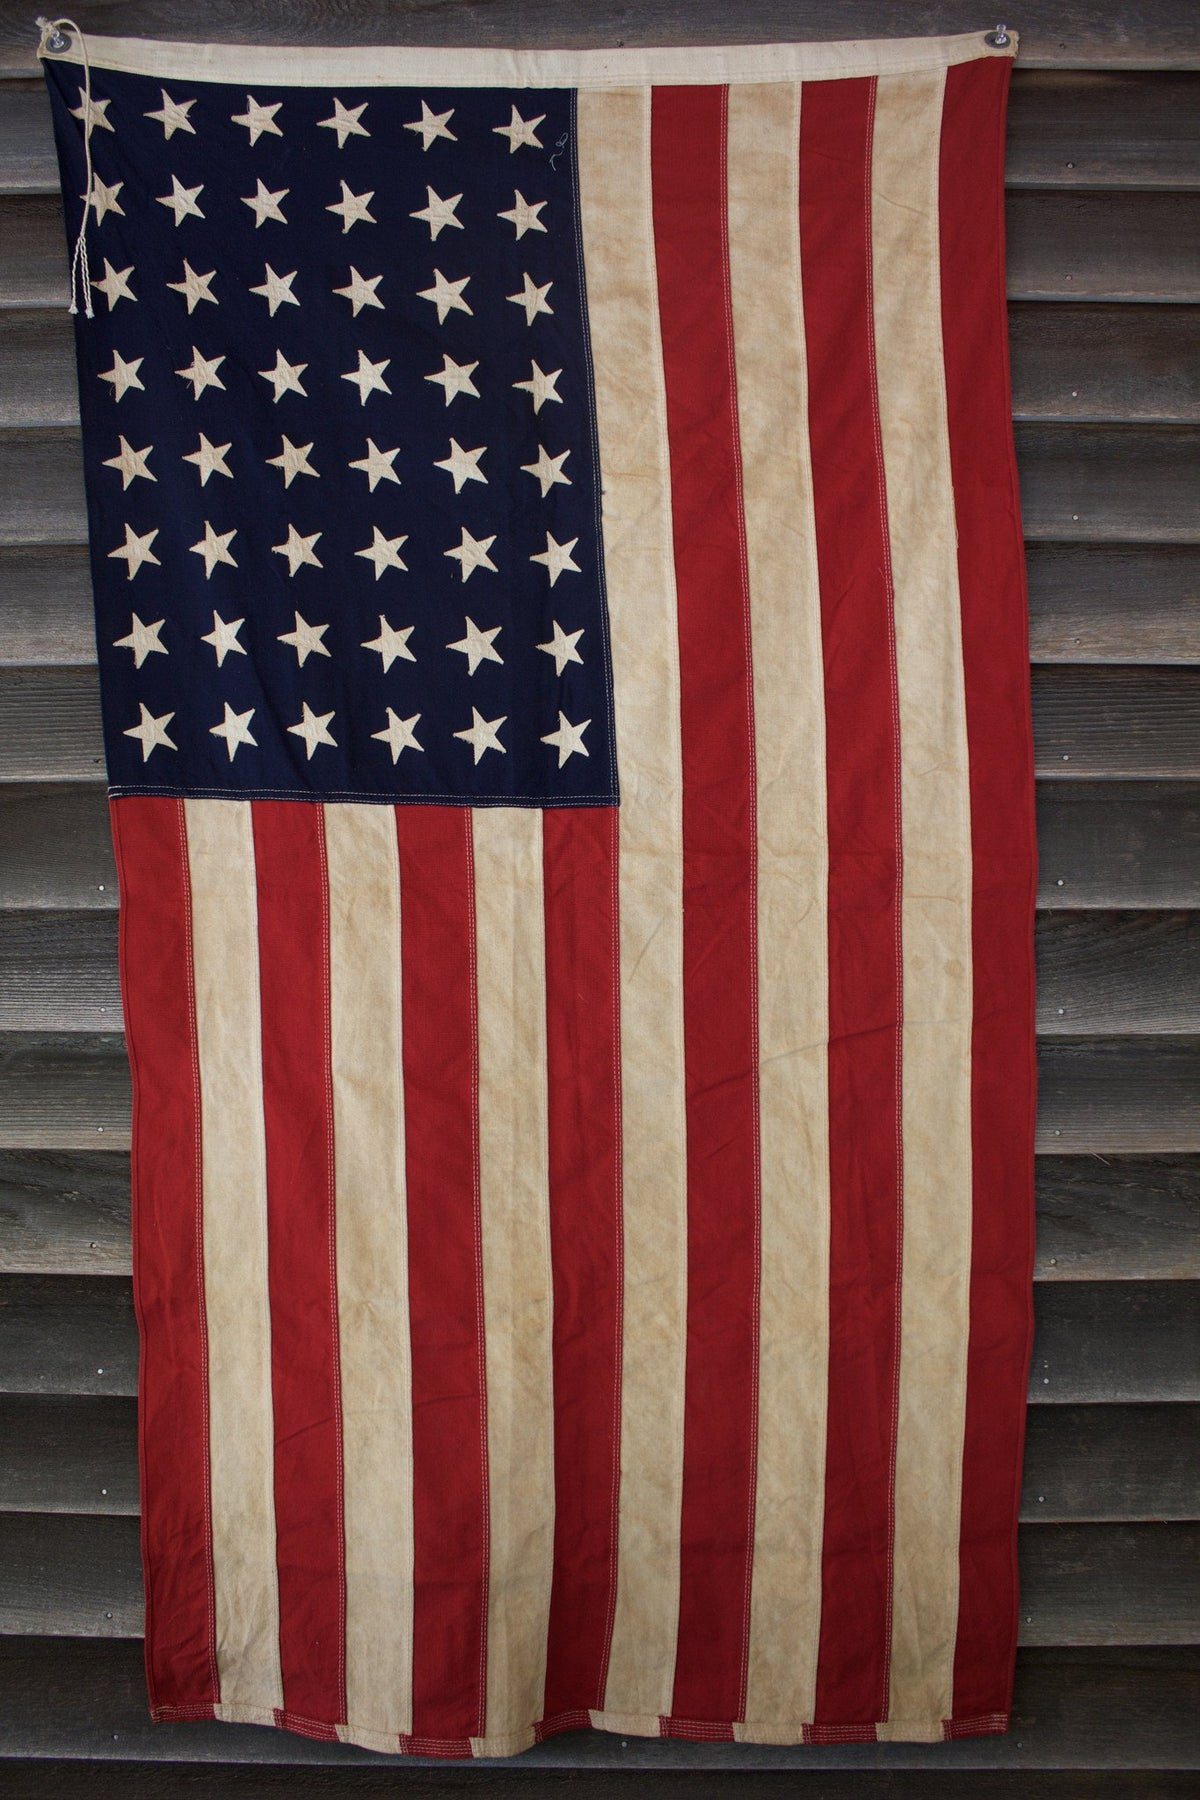 48 Star American Flag - Diamonds & Rust